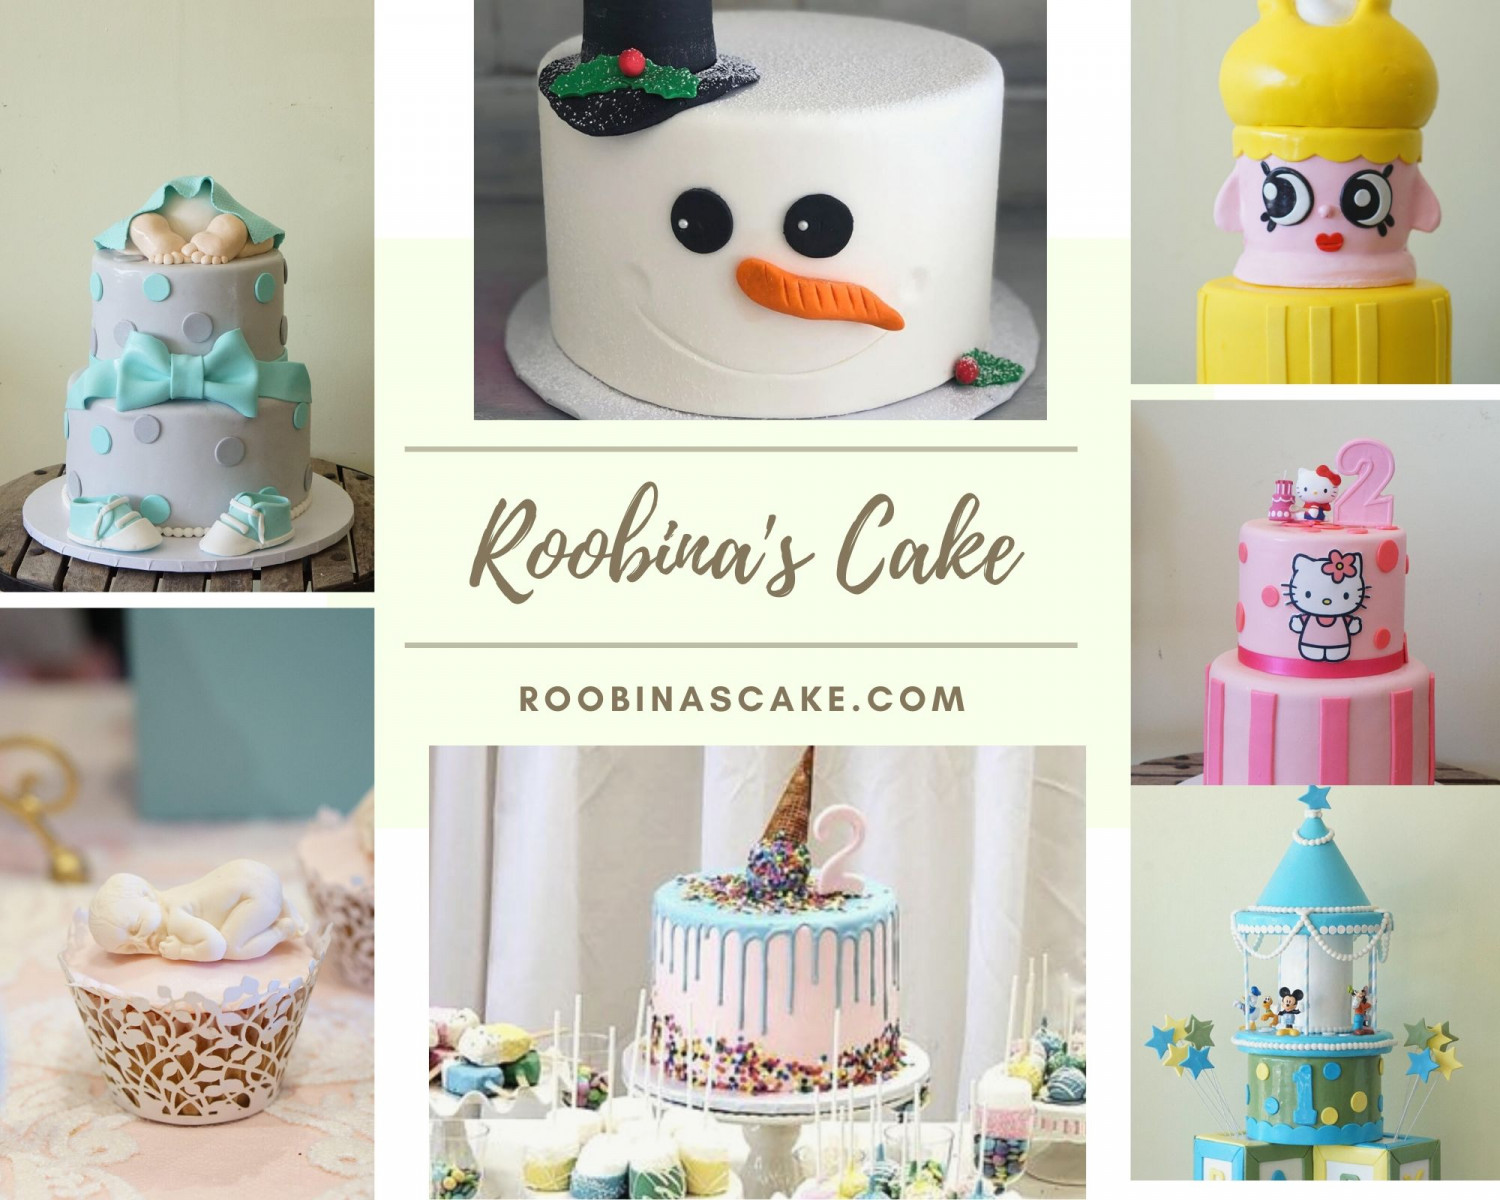 Best Cakes in Los Angeles - Only at Roobina's Cake Infographic